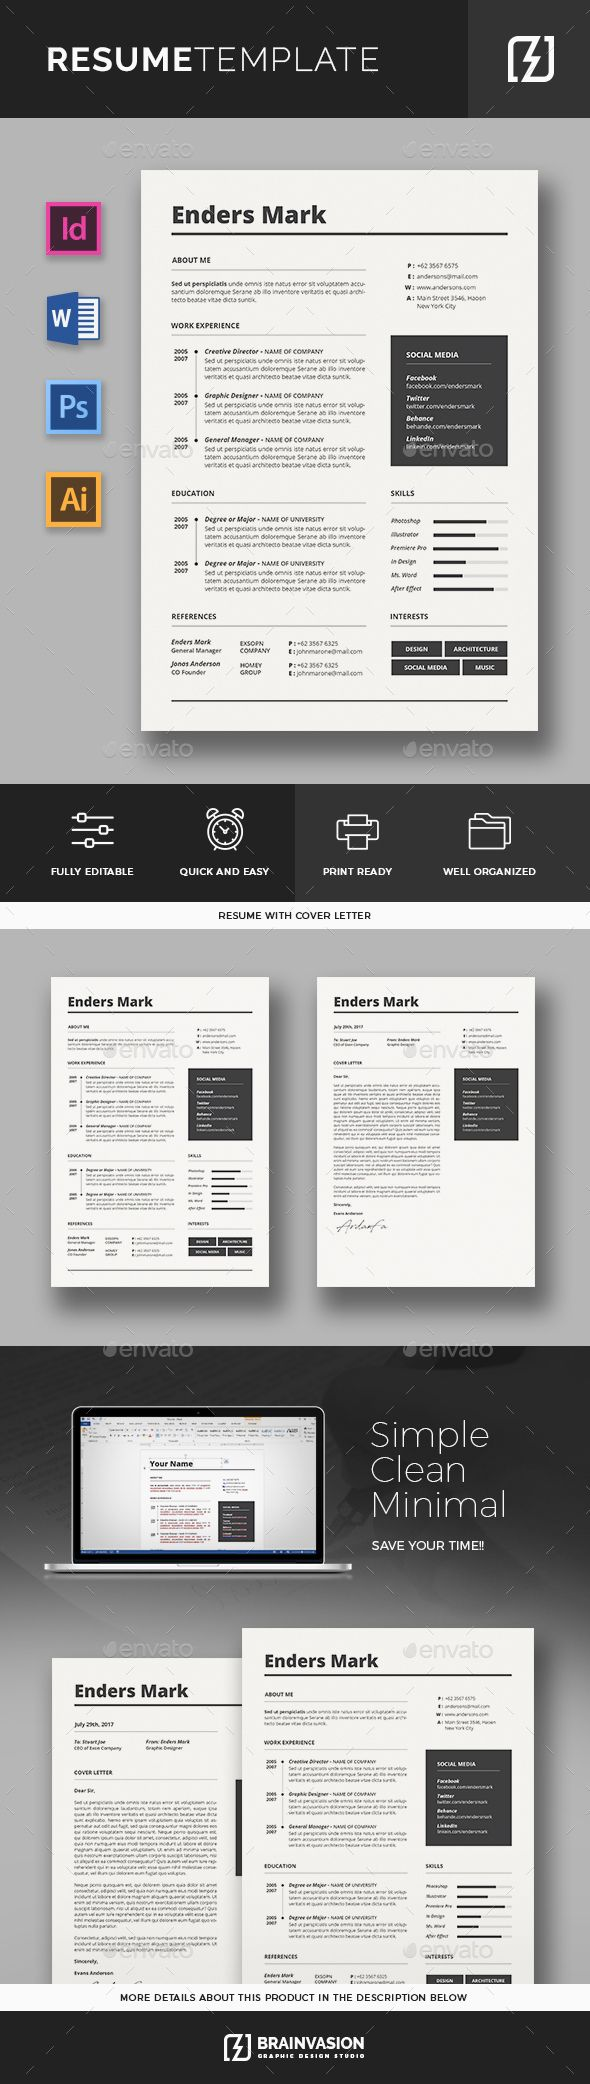 Resume Template by Brainvasion FeaturesA4 size Print Ready (CMYK) 300Dpi 100 Fully Resizeable Oraganized Layers With Bleeds Free icons using Fontawesome All col